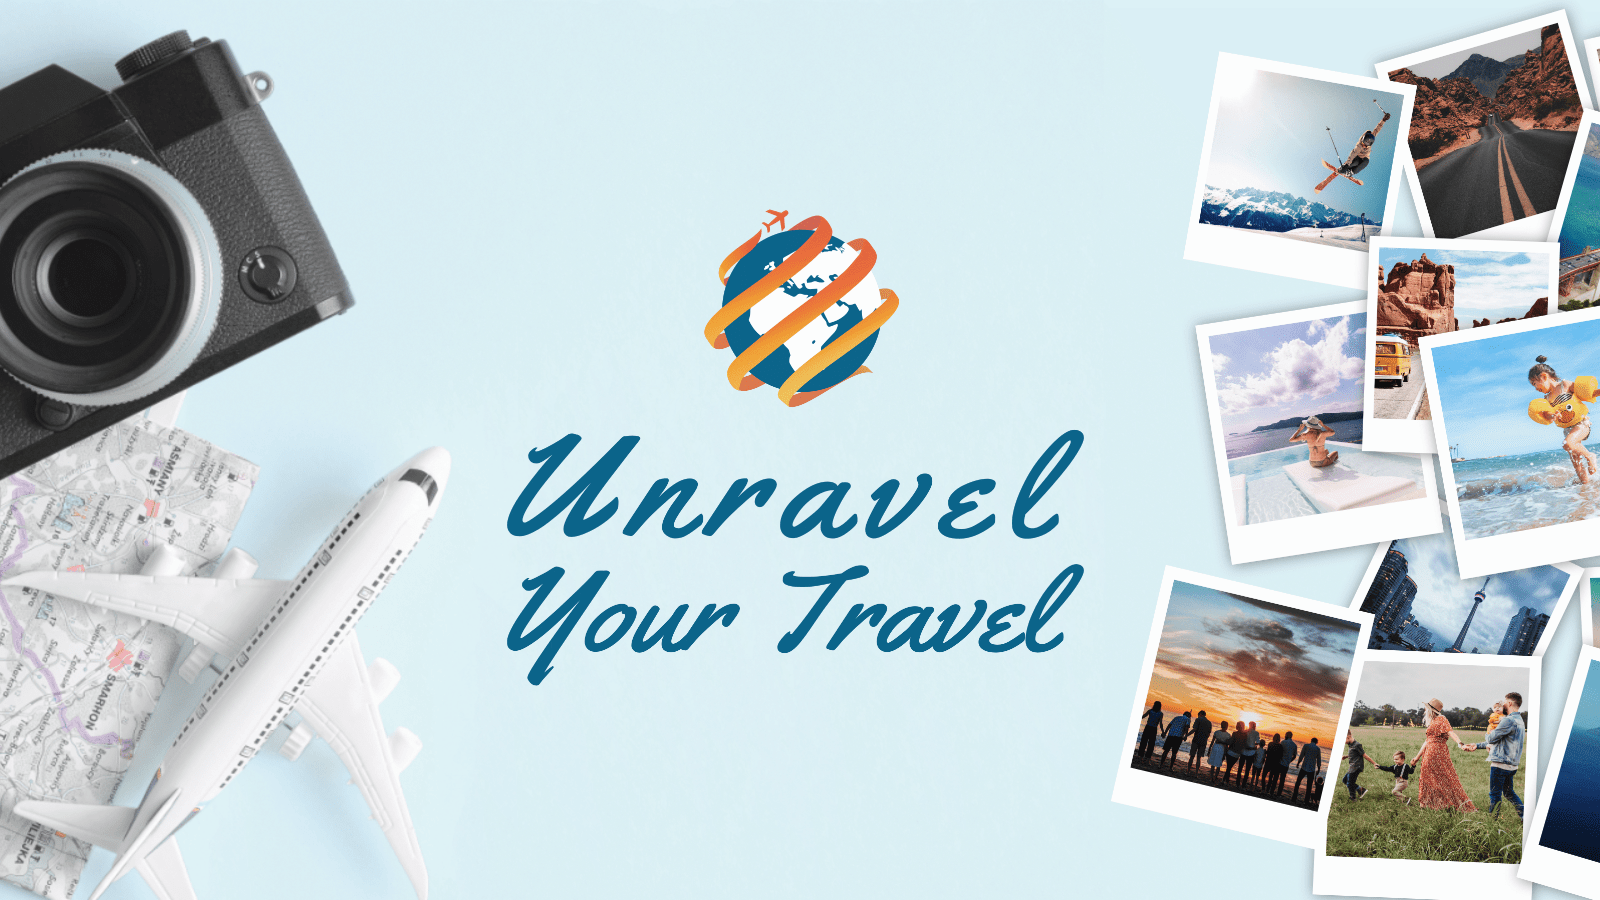 facebook banner with travel logo